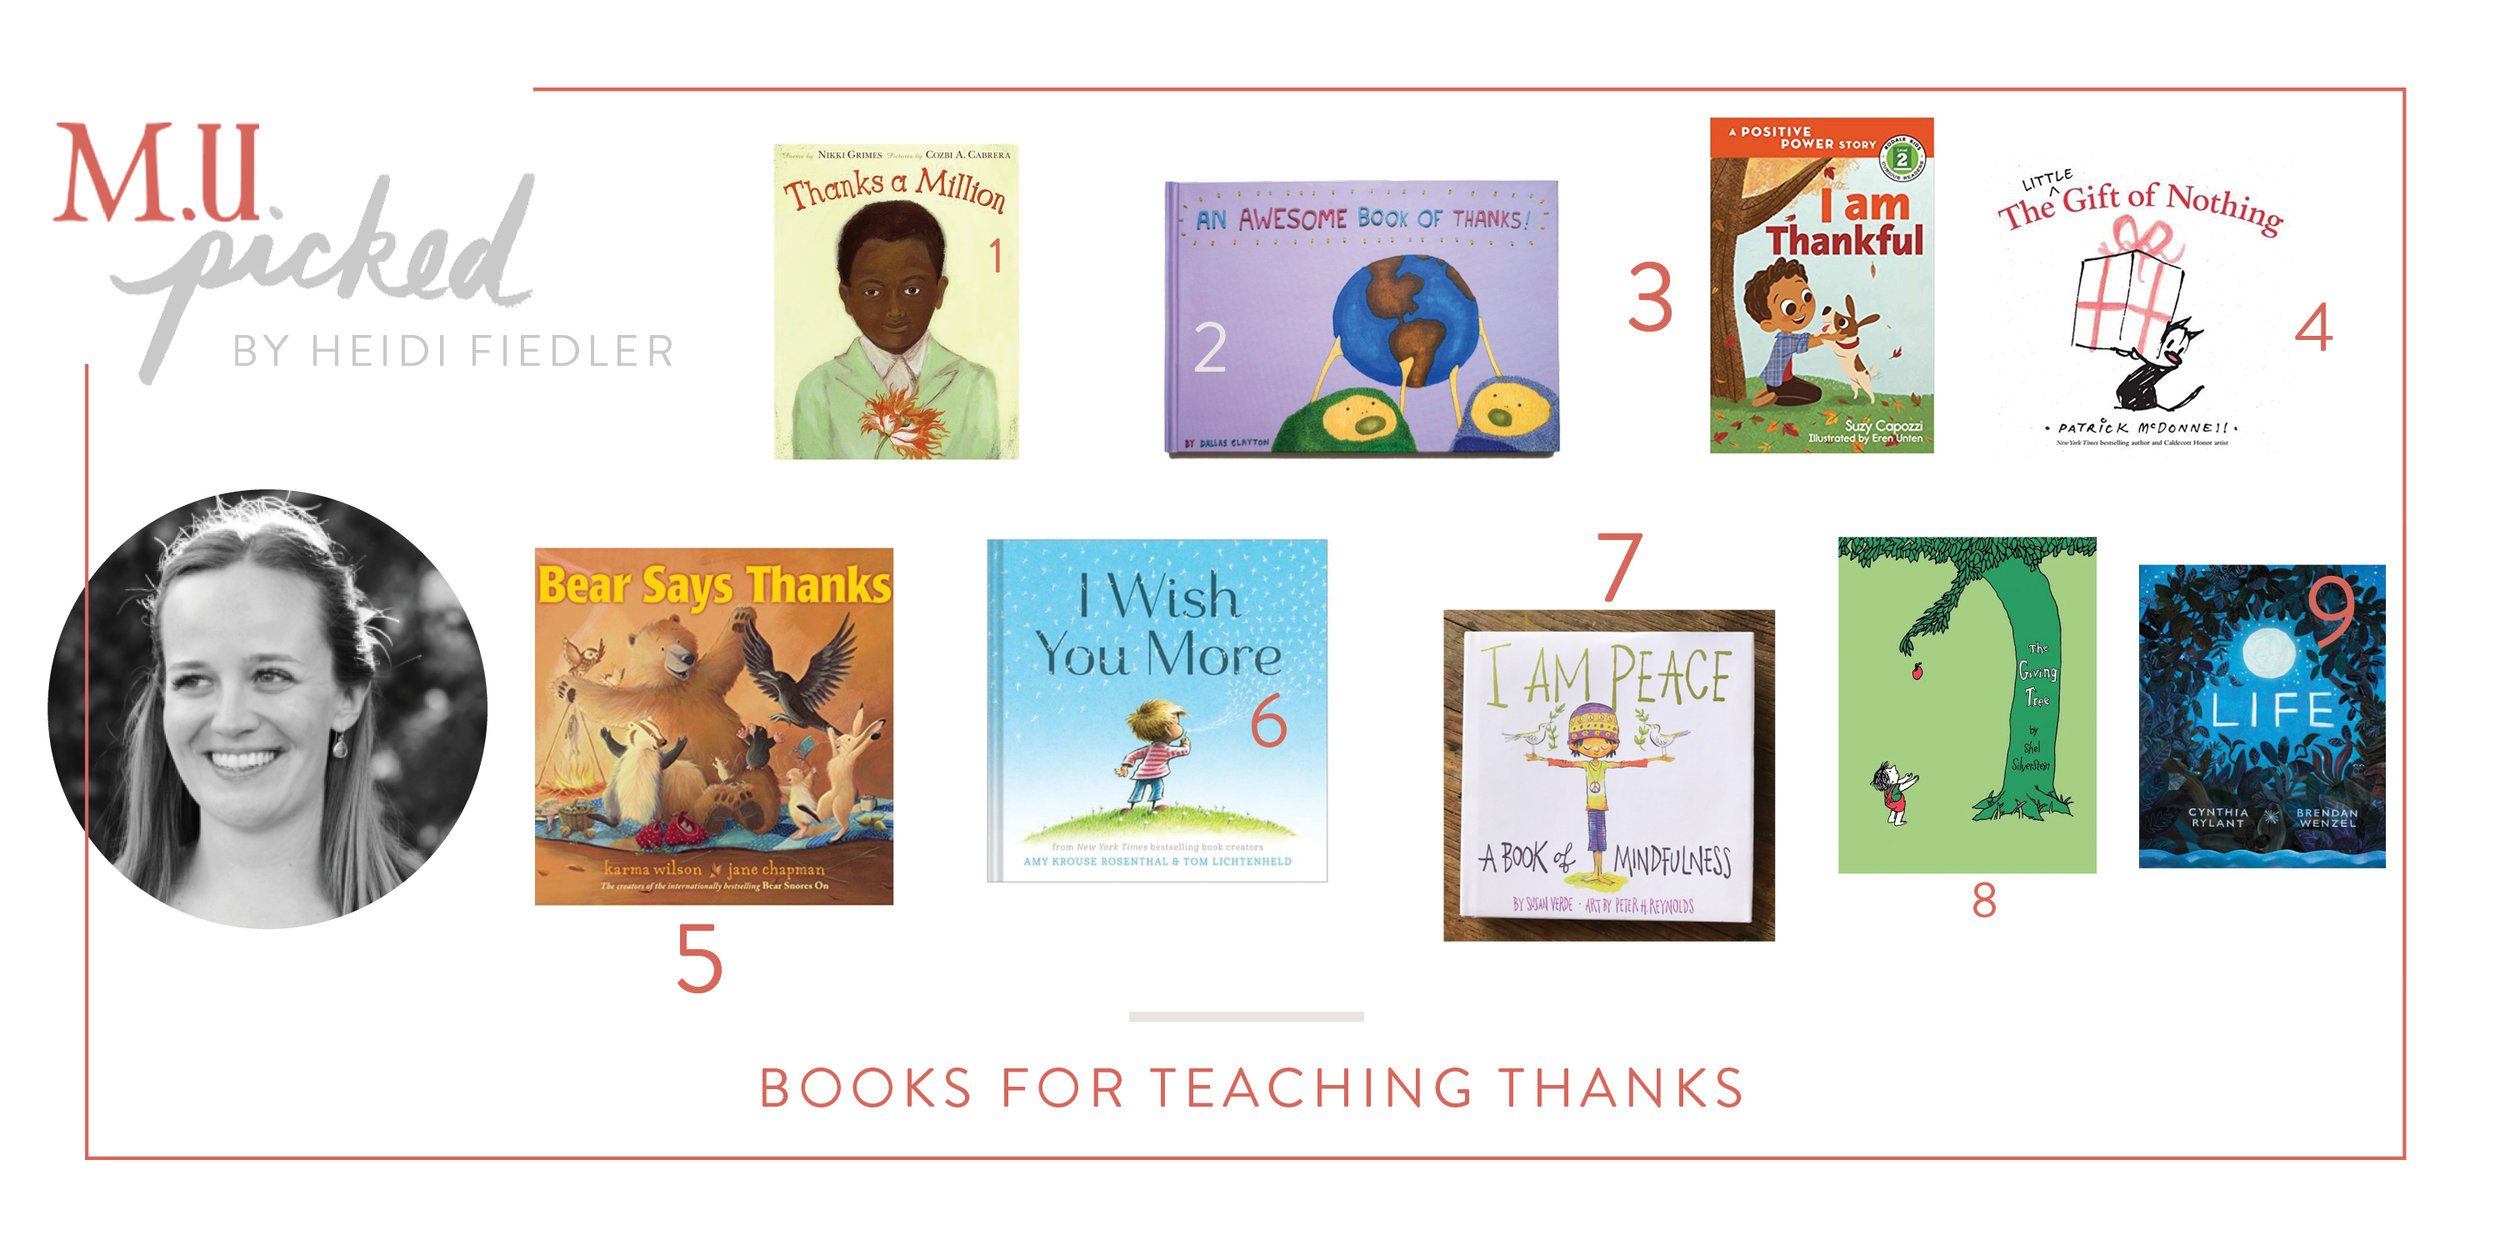 """1. Thanks a Million  This collection of poems is perfect for reading together, whether at bedtime or the dinner table. Nikki Grimes' reminds readers how to say thank you for what we already have.  2.   An Awesome Book of Thanks  Dallas Clayton is generous with his art and spirit, both in his books and in life. Even the youngest readers will be tickled by this exuberant list of all there is to be thankful for  3. I Am Thankful  Independent readers can build reading skills and learn positive affirmations with this Positive Power series.  4. The Gift of Nothing  What do you give someone who has everything? Sometimes the most thoughtful answer is """"nothing."""" And sometimes it's love!  5. Bear Says Thanks  Lighthearted and sweet, Bear 's friends come together to throw their own thanksgiving in the forest. This is a fun one to share with little ones.  6. I Wish You More  Like other Amy Krause Rosenthal wonders, this book celebrates word play, leaves readers with a sense of awe, and wishes readers the joy of friendship, curiosity, laughter, and peace.  7. I Am Peace  It's always easier to give when we feel safe and calm. Help kids find their happy place with this guided meditation.  8. The Giving Tree  This classic book still makes readers cry. The ultimate example of how we can evolve and still give to each other over a lifetime, this is one you'll be glad is on the family bookshelf.  9. Life  As much as we might try to shelter them, kids know life isn't always easy. But there's always something to be grateful for, even in hard times. This book shines a light on the creatures who find a way to be strong in difficult circumstances and inspire us with their beauty."""